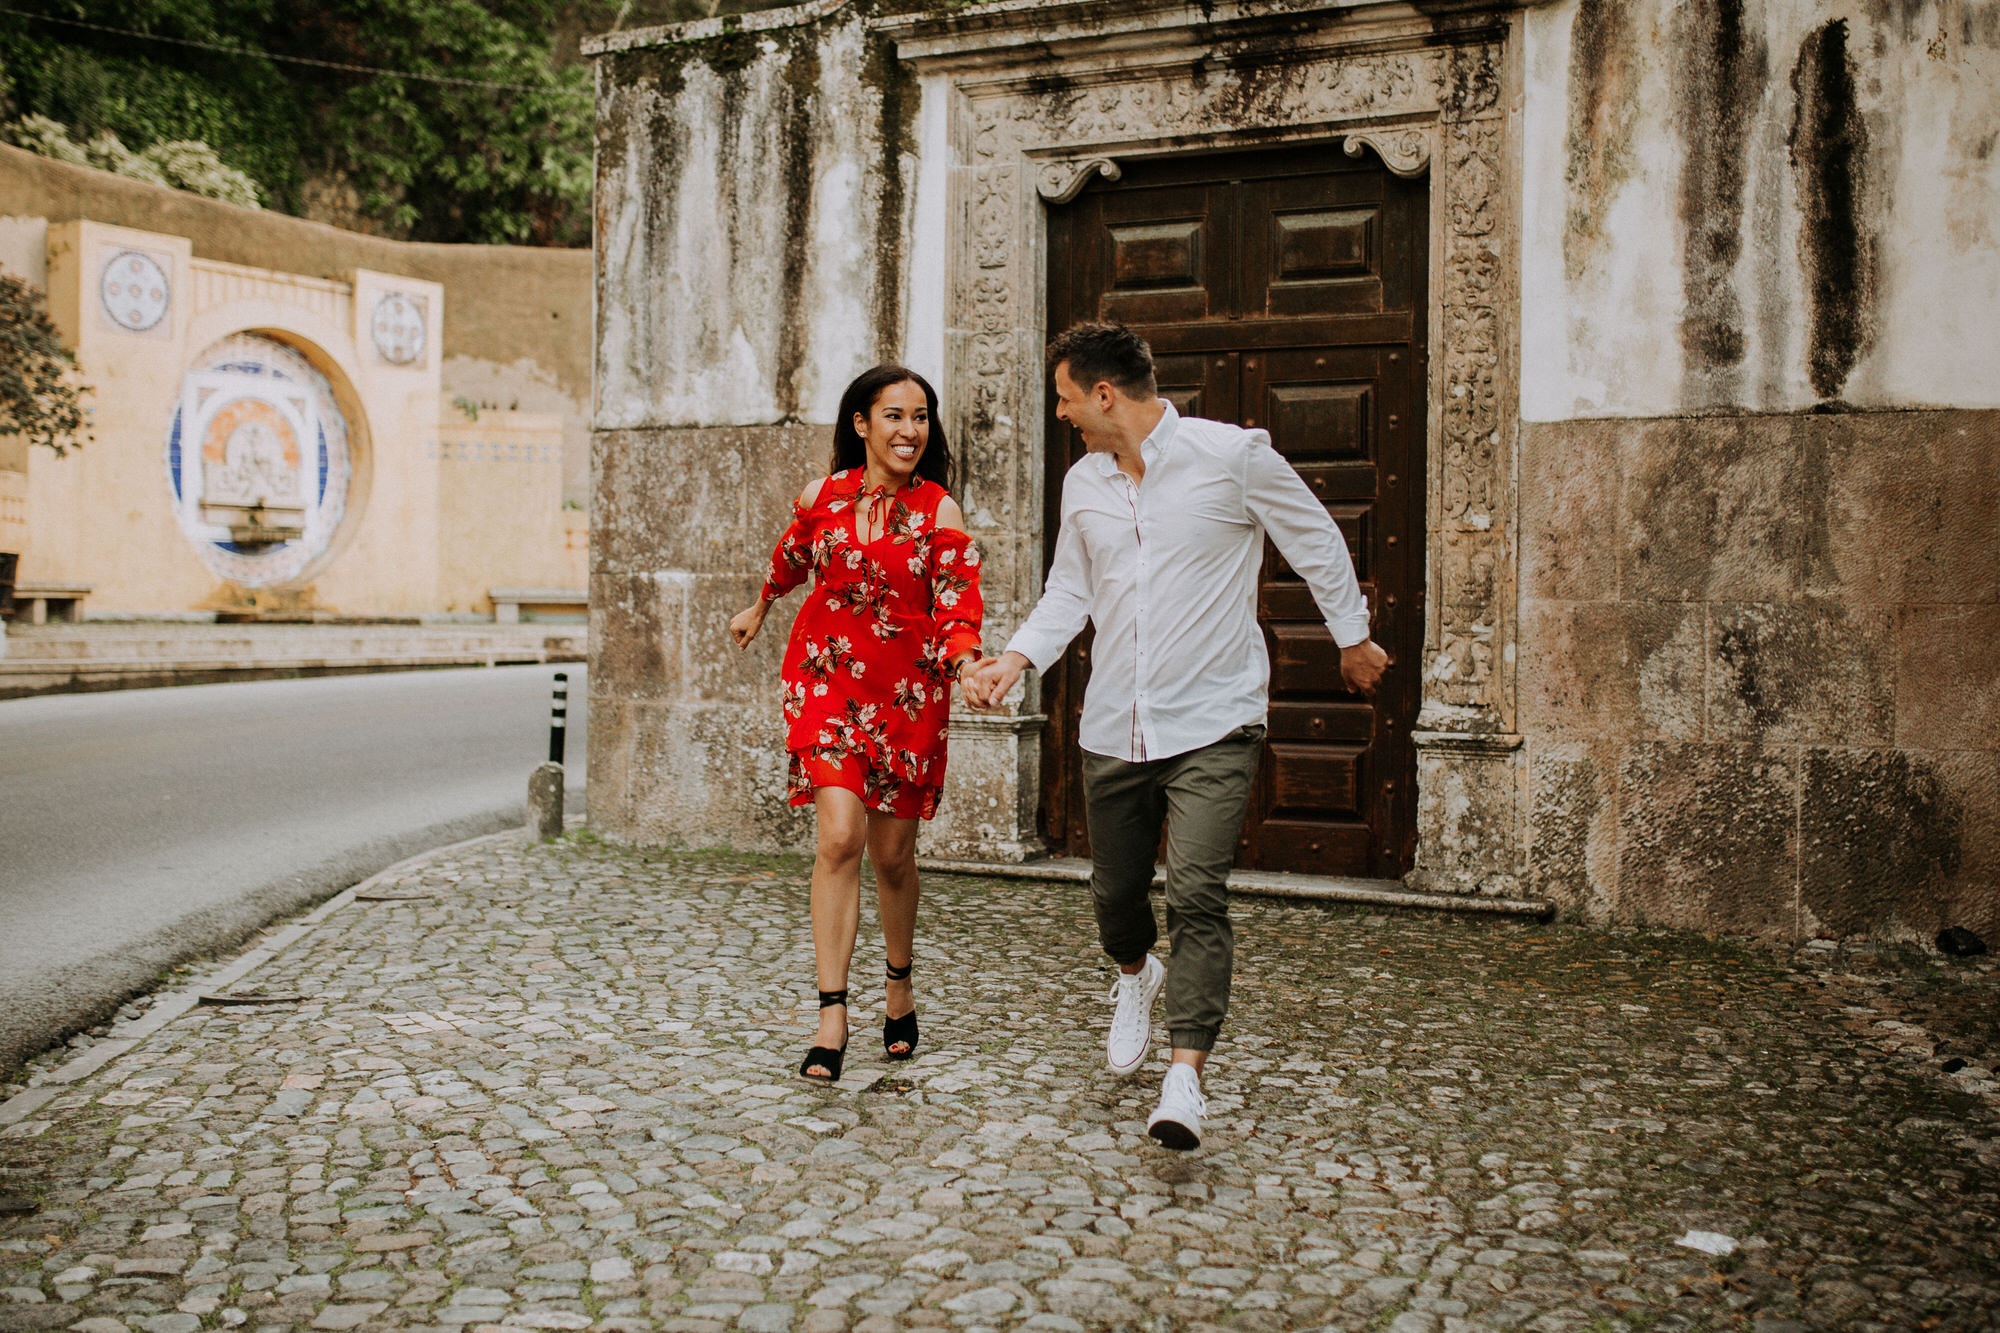 36-sessao-noivado-engagement-love-session-Sintra-lisboa-town-wedding-photography-photographer-natural-best-venue-planner-destination-filipe-santiago-fotografia-lifestyle-documentary